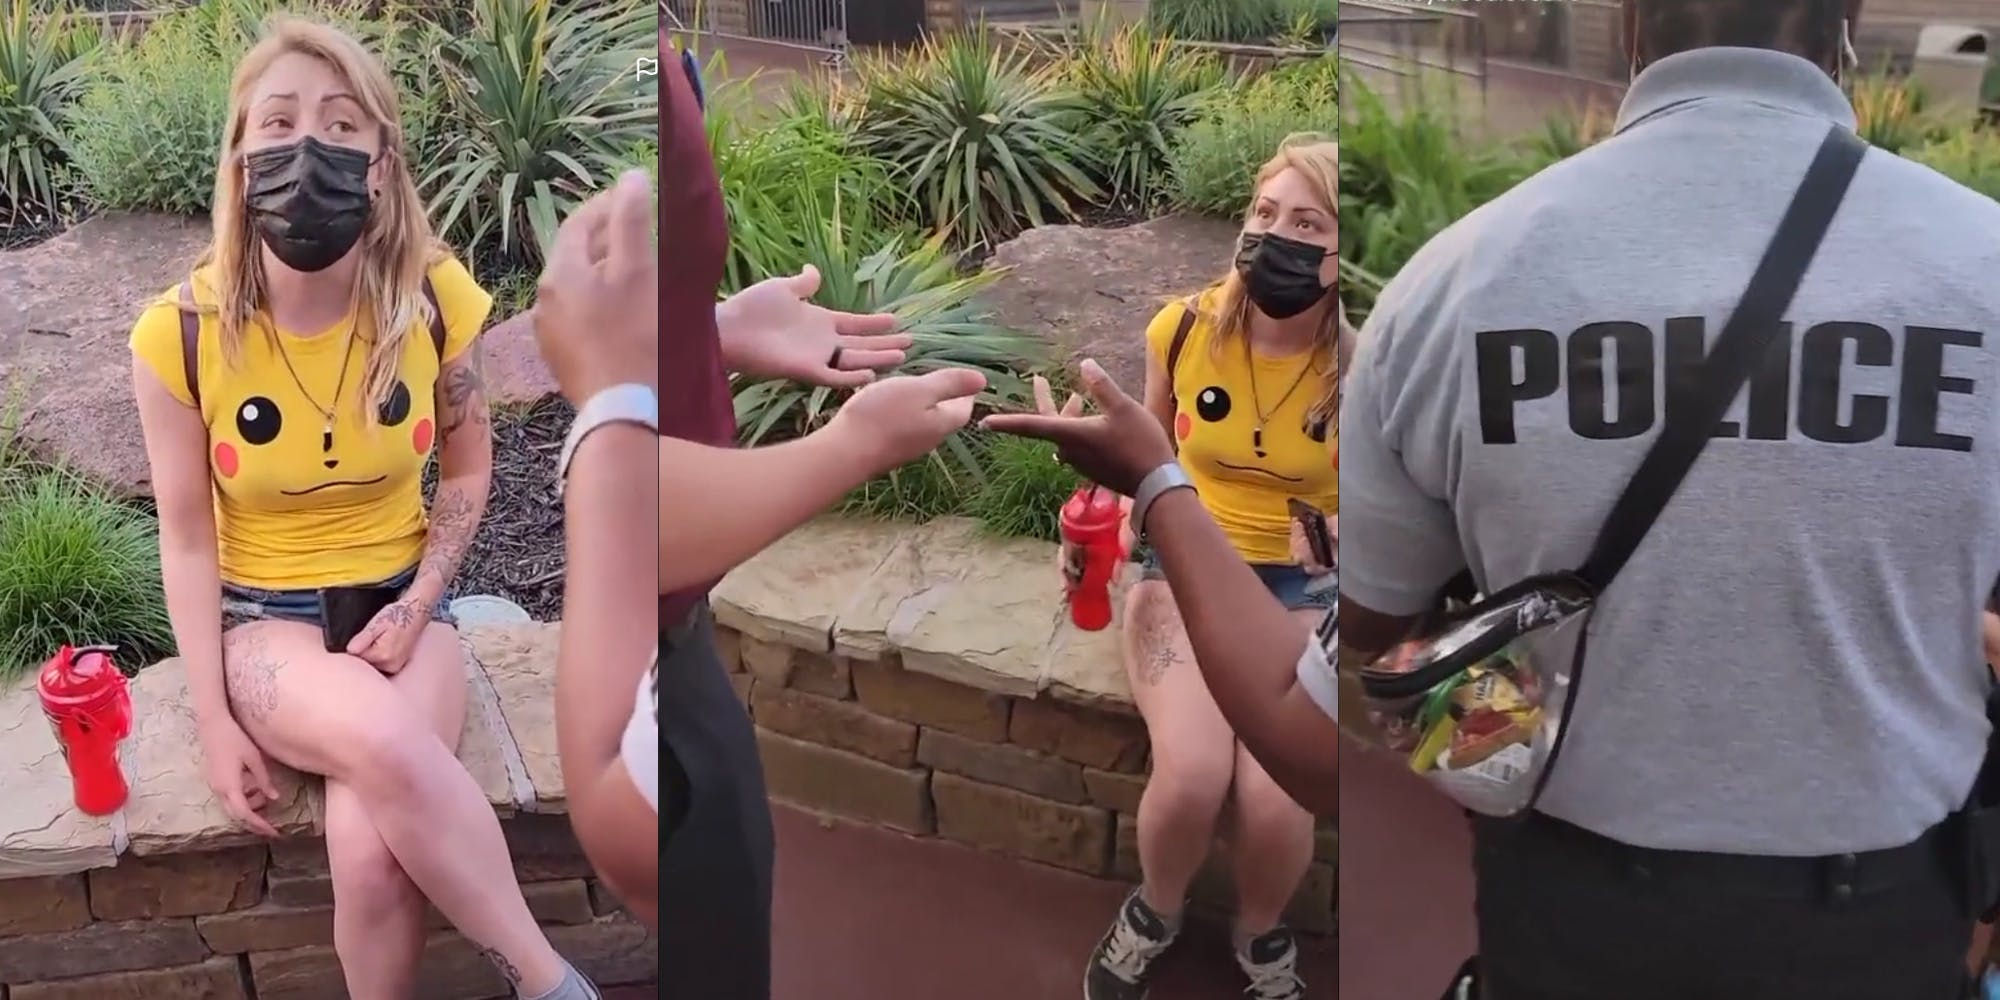 Tiktok Shows Cop At Six Flags Allegedly Confront Woman Over Her Shorts